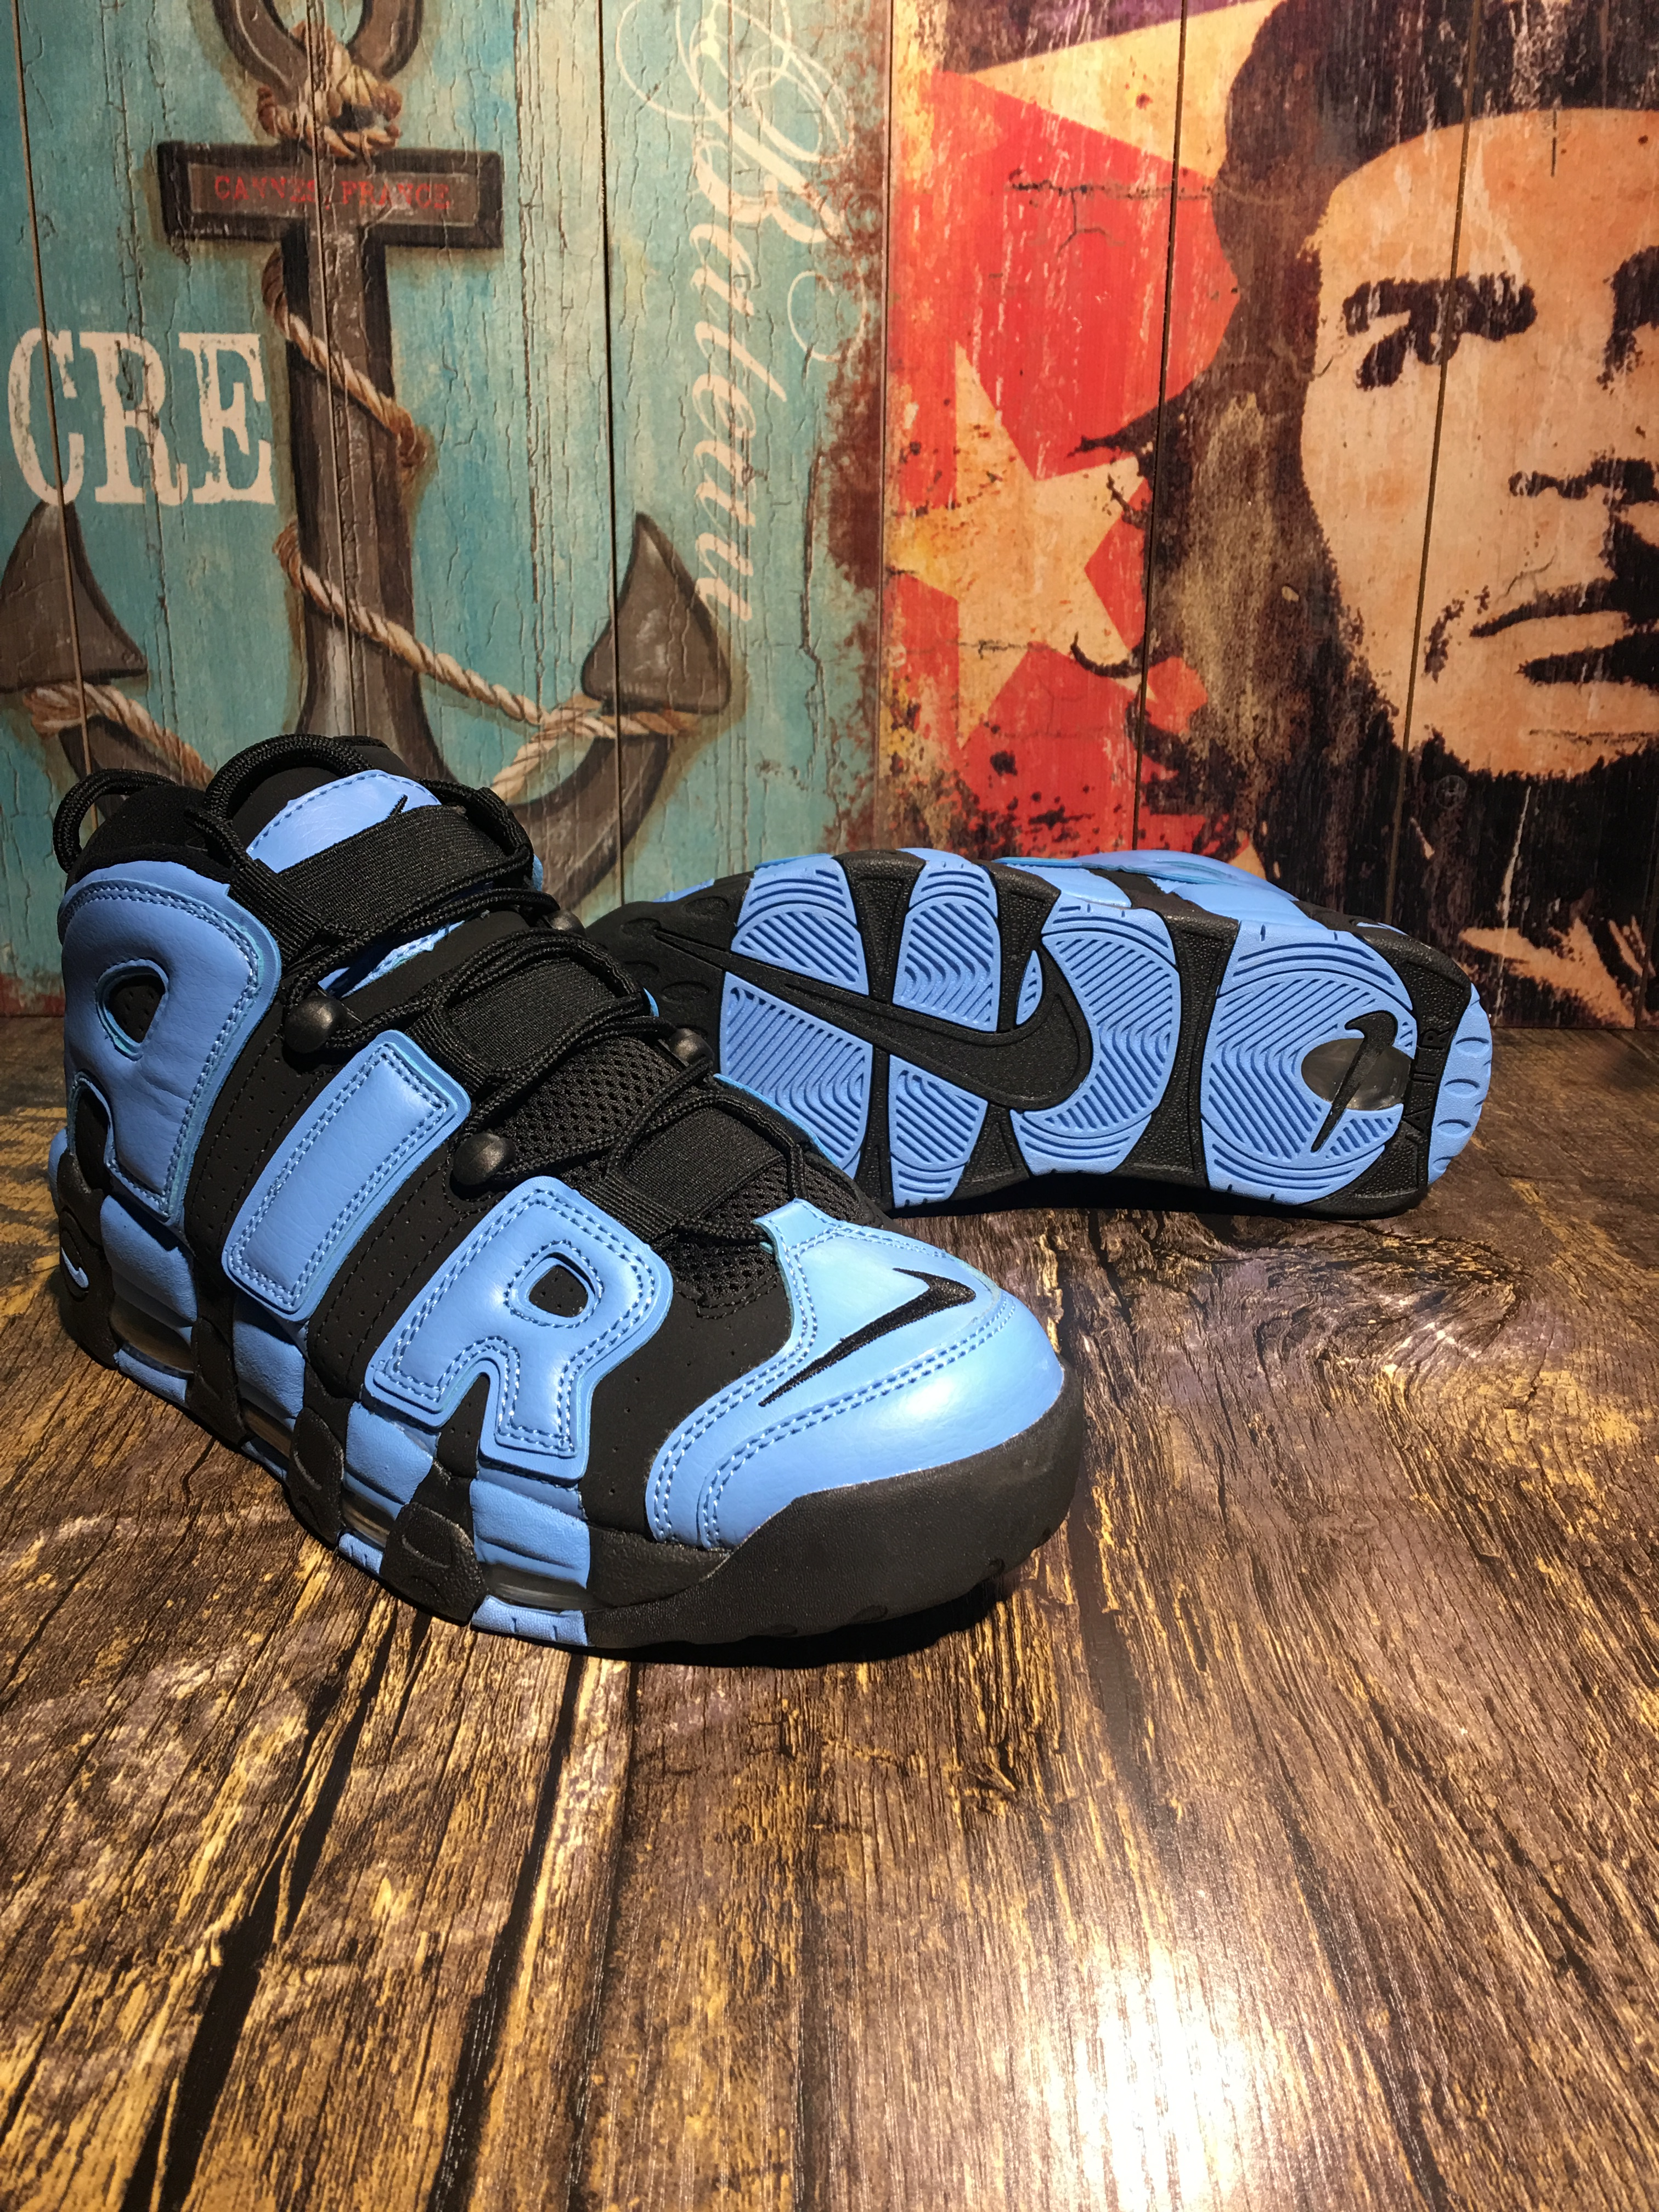 Nike Air Uptempo Black Blue Shoes